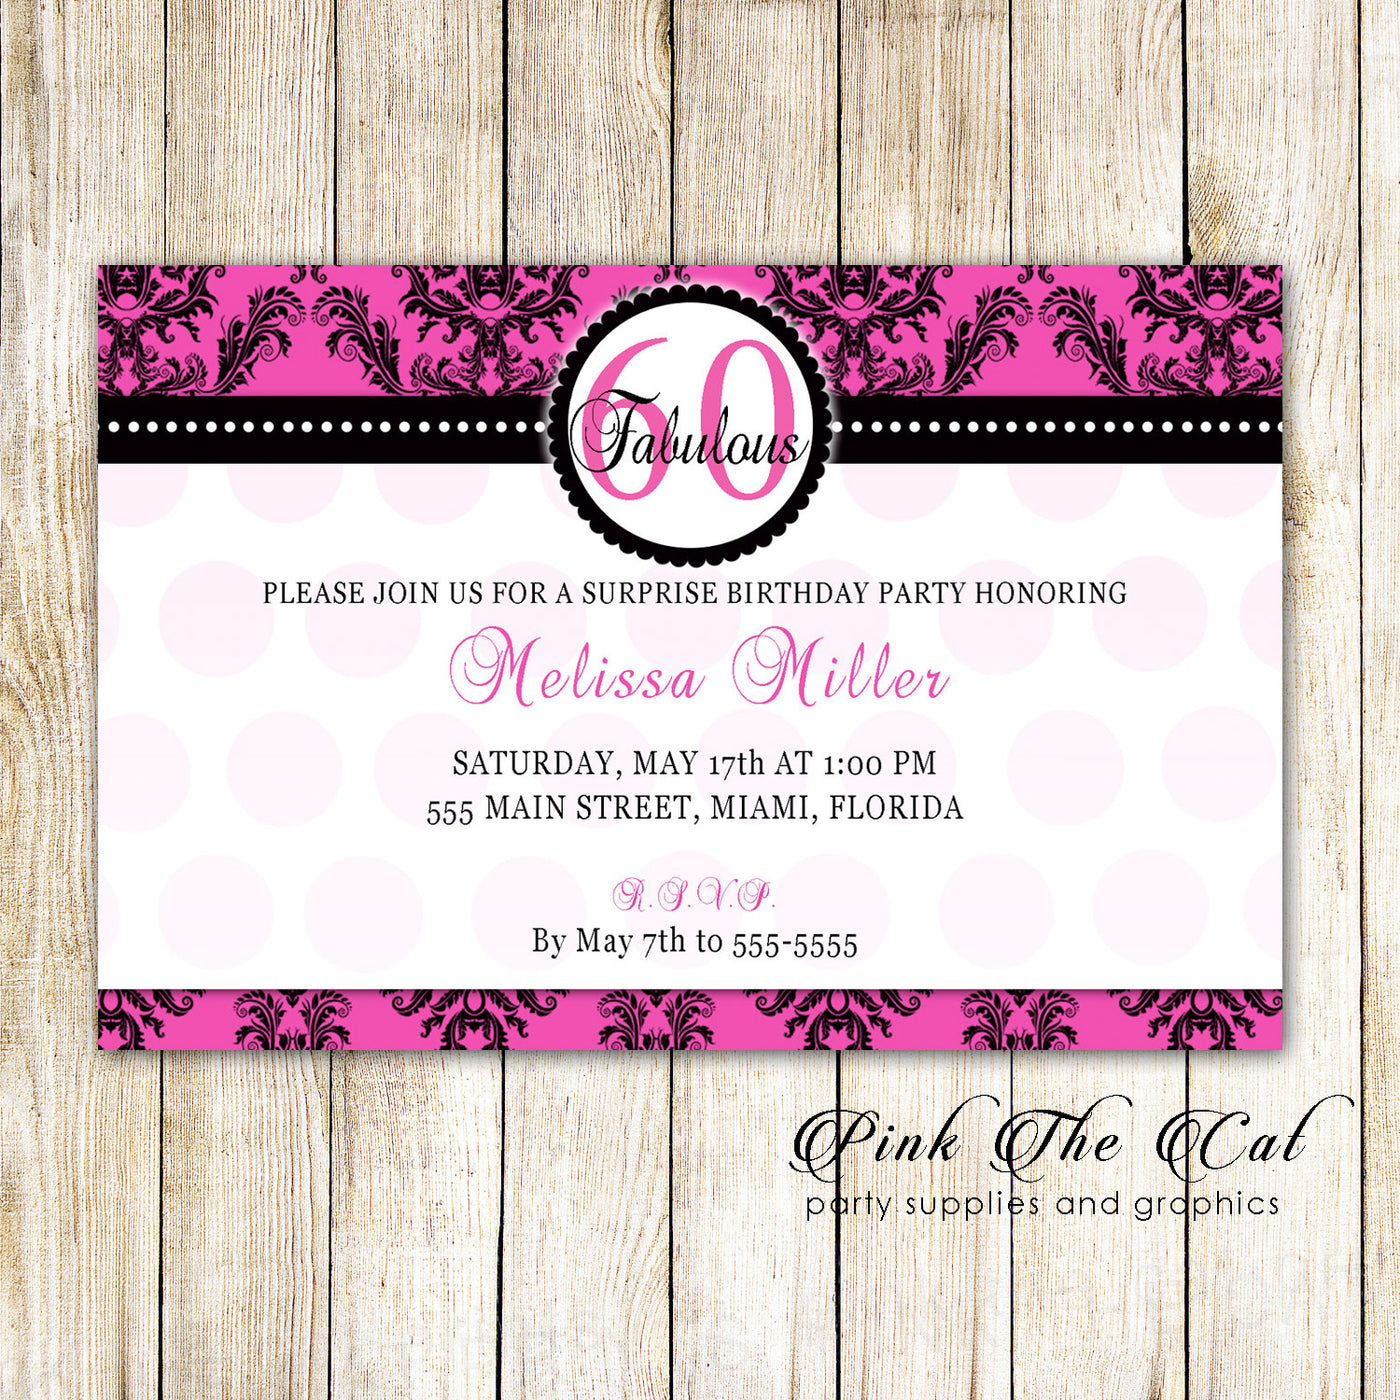 Damask Invitation Hot Pink Black Damask Adult 60th Birthday